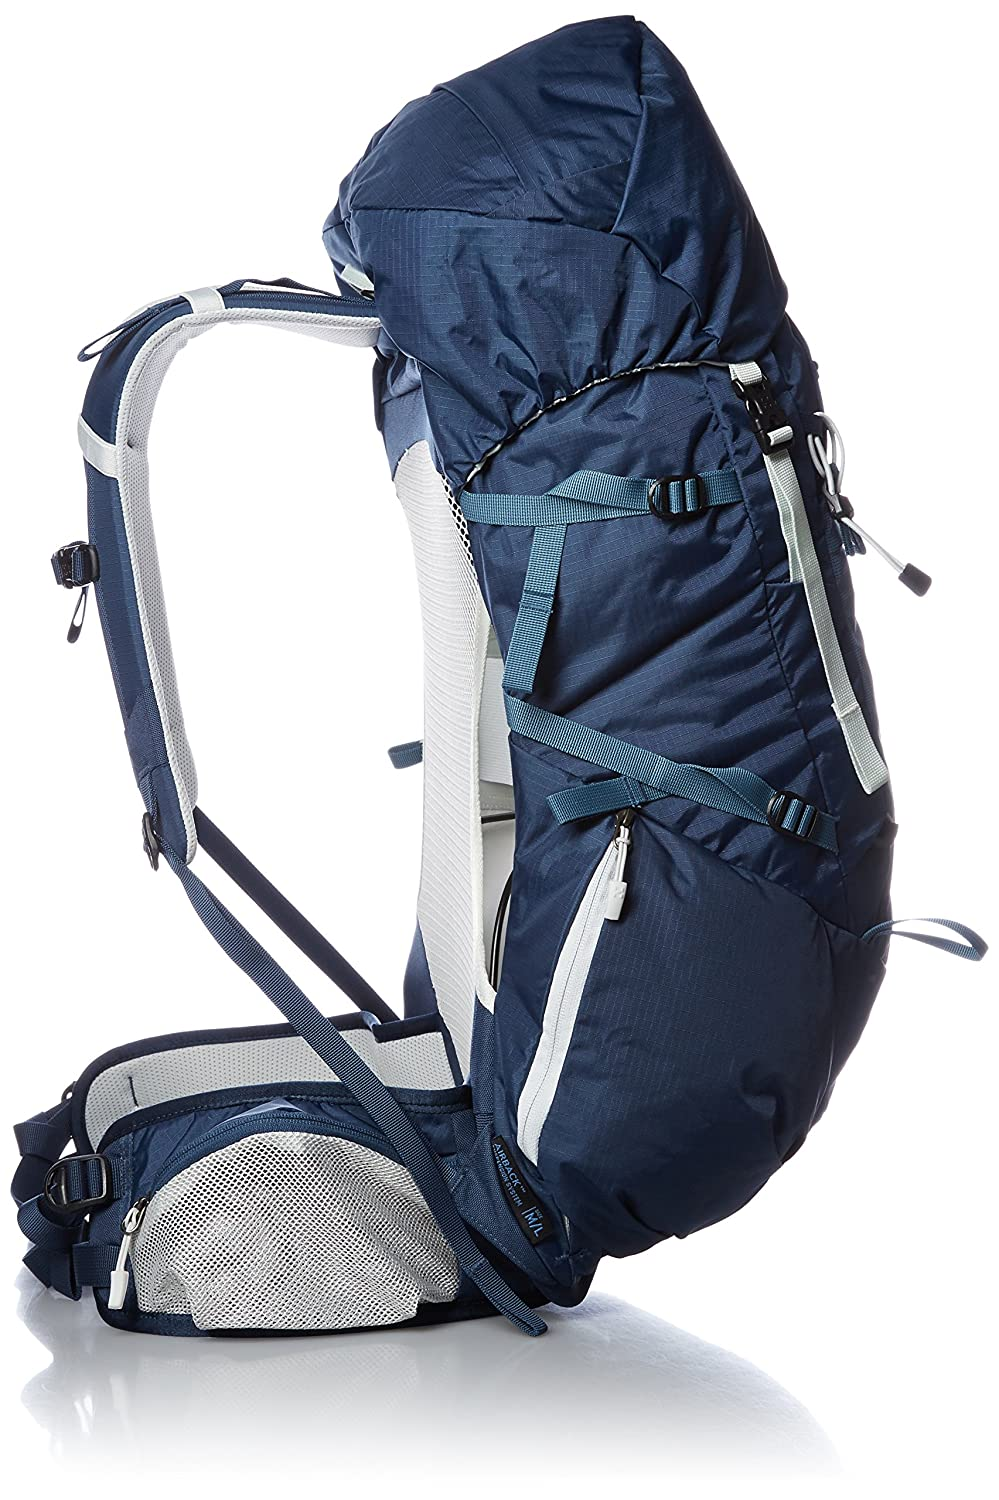 Amazon.com : Haglofs Vina 30 Hiking Backpack Medium/Large Blue Ink Steel Sky : Sports & Outdoors